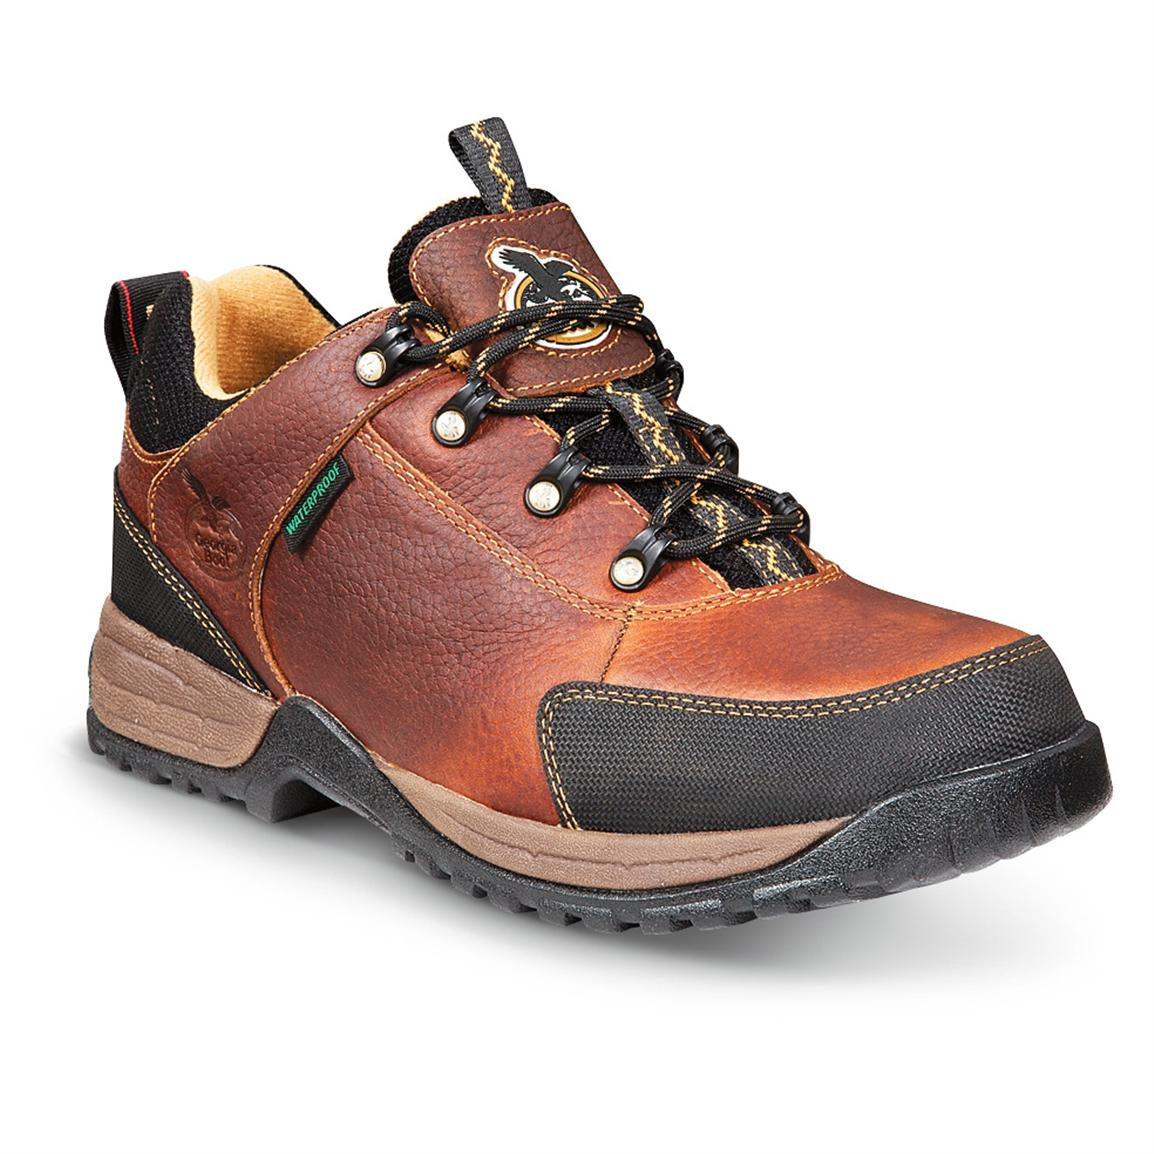 Men's Georgia Boot® Riverdale Low Hiking Shoes, Brown